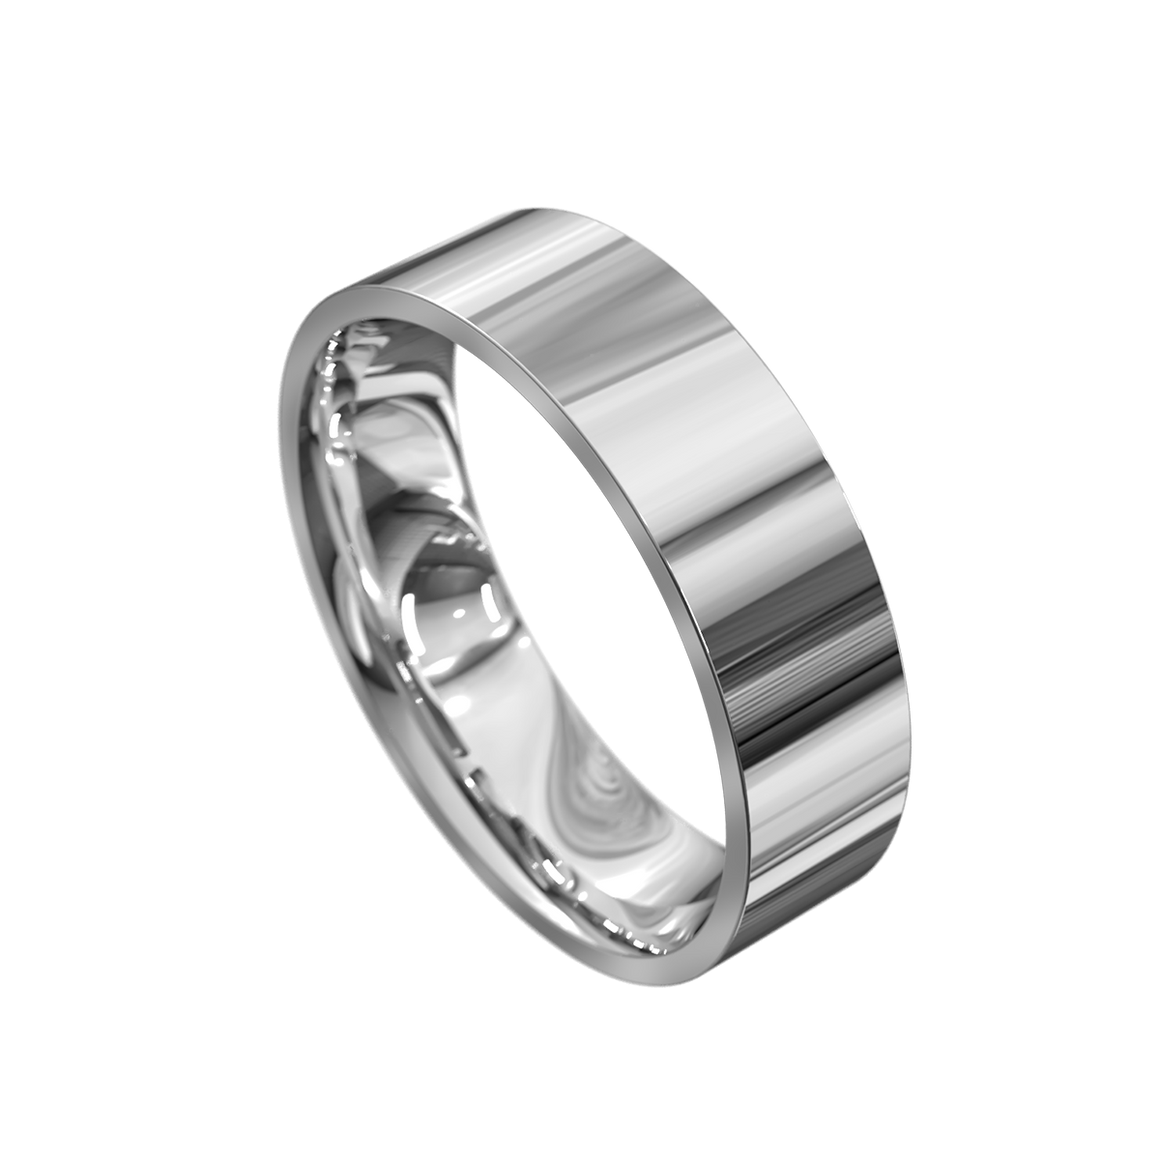 The 'Zeus' Mens Wedding Ring - Gemma Stone  ABN:51 621 127 866